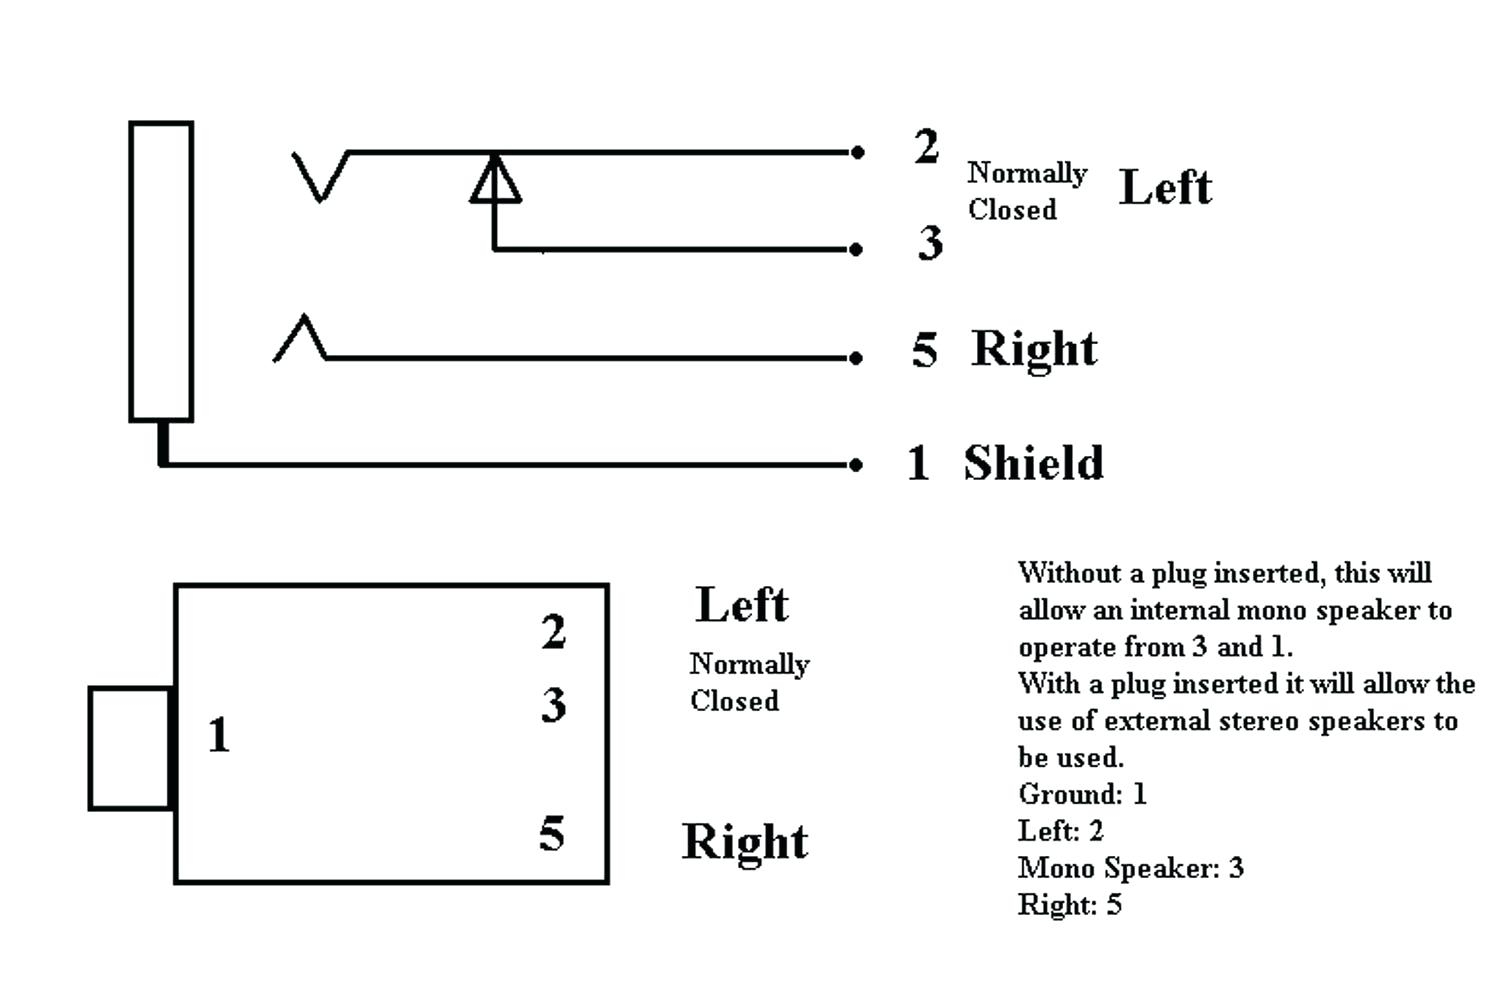 Female Socket Connector Wiring Diagram - Trusted Wiring Diagrams • - Xlr Connector Wiring Diagram